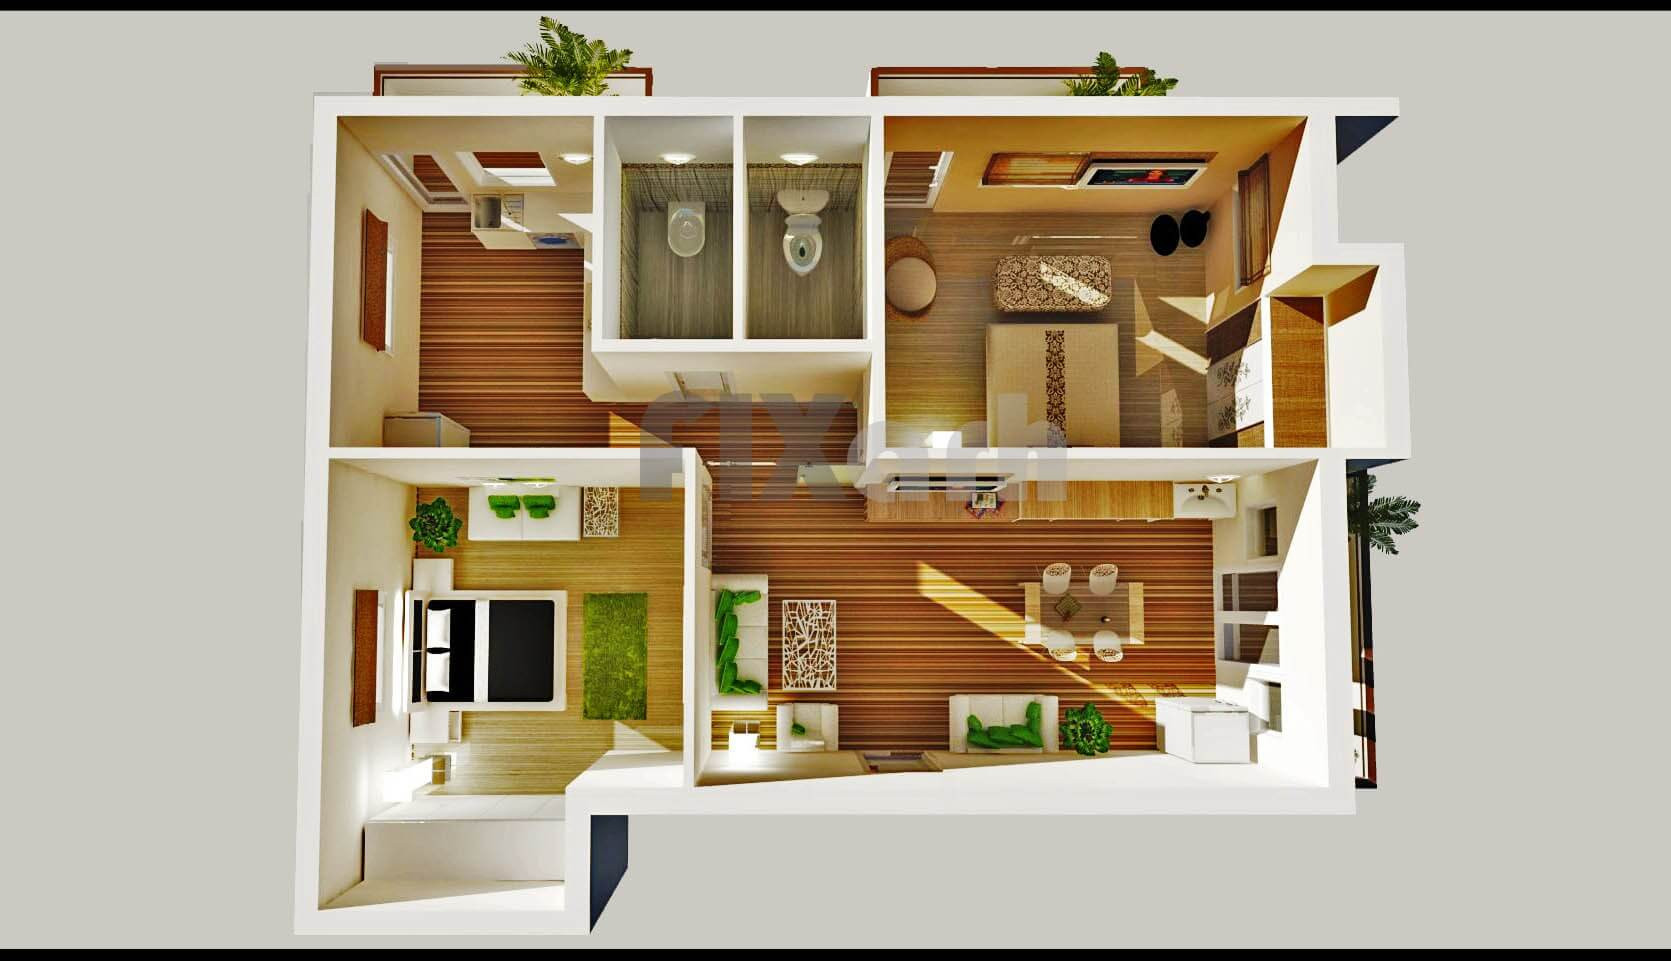 Small 2 Bedroom House Plans  Things You Need to Know to Make Small House Plans